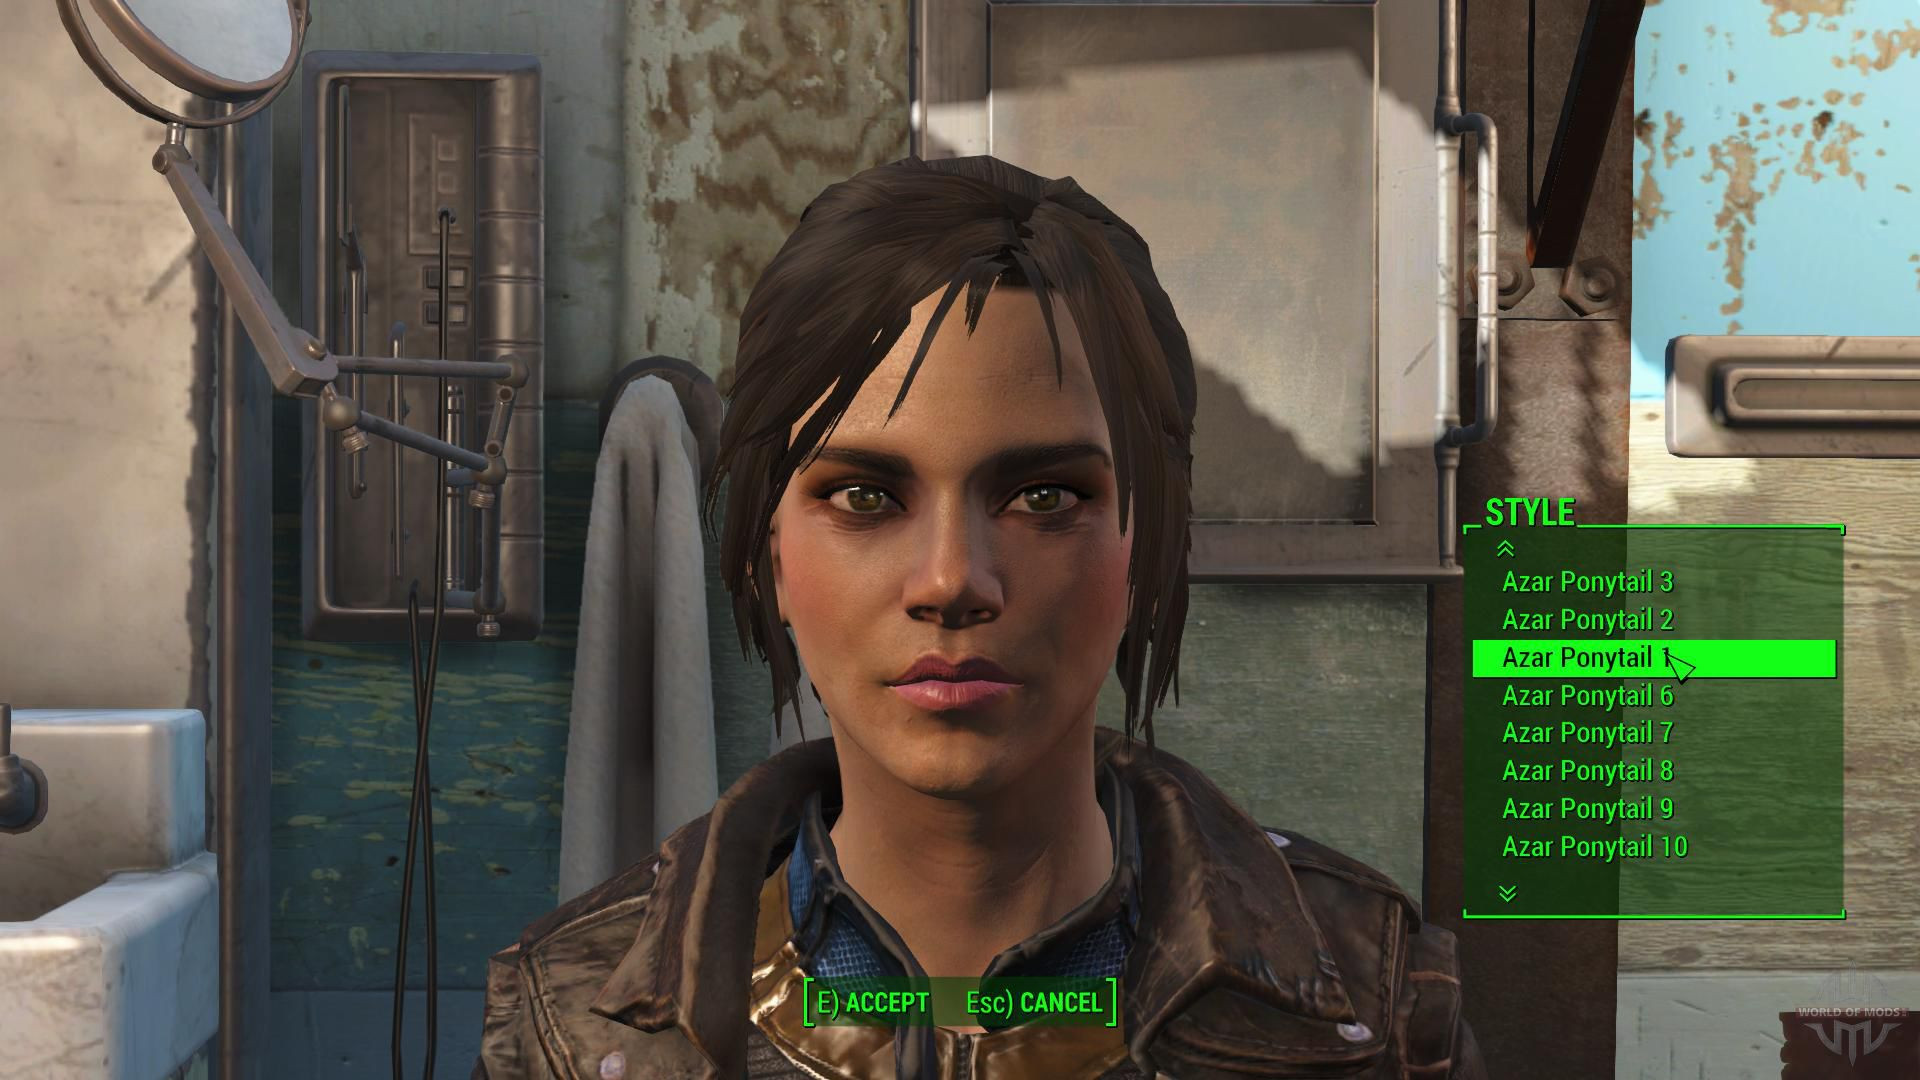 Fallout 4 Female Hairstyles  Azar Ponytail Hairstyles for Fallout 4